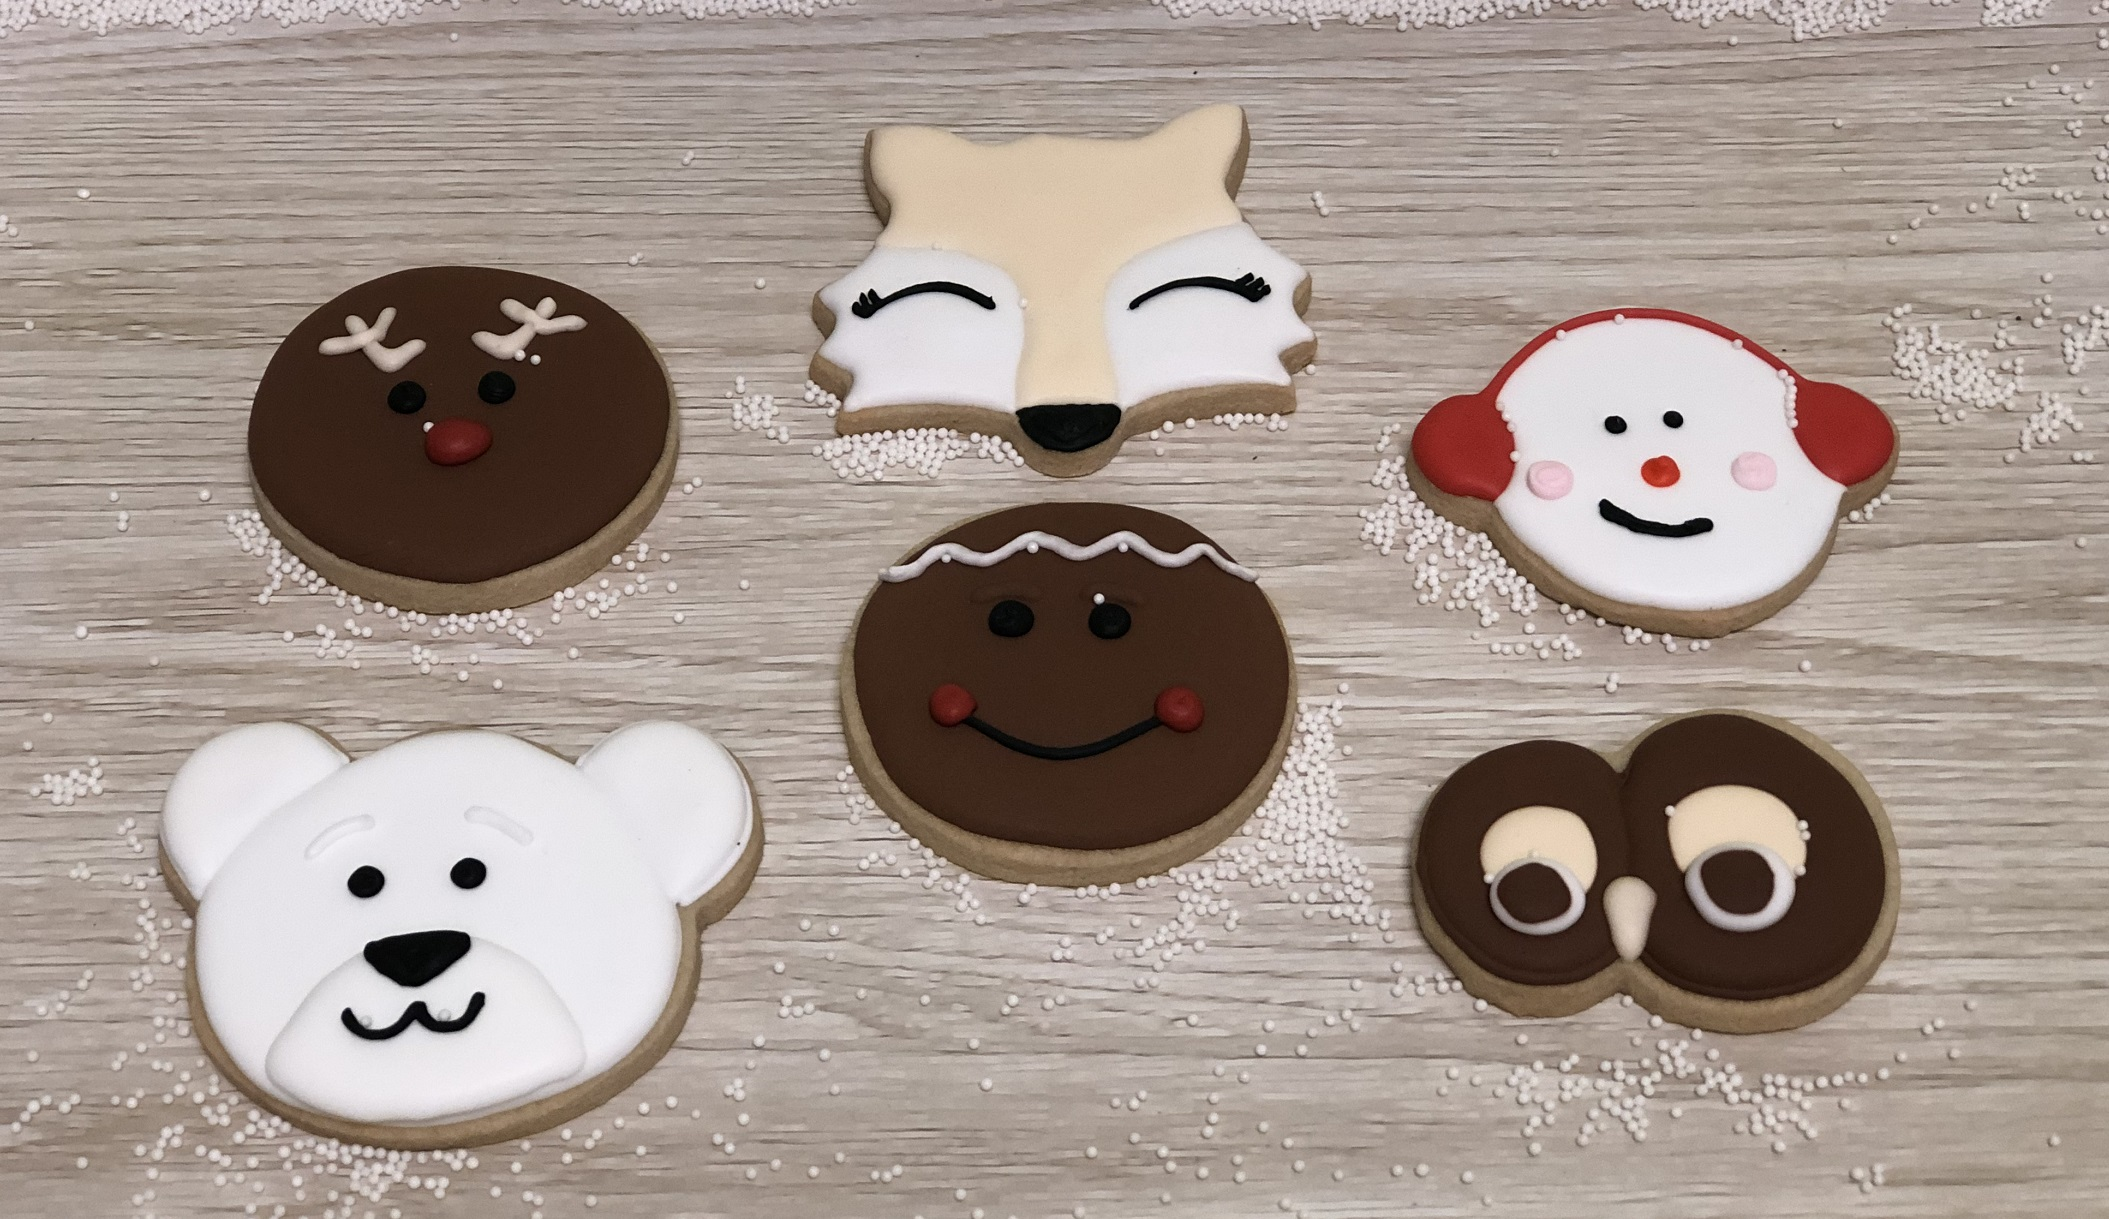 Kid's Camp: Faces of Winter Cookies